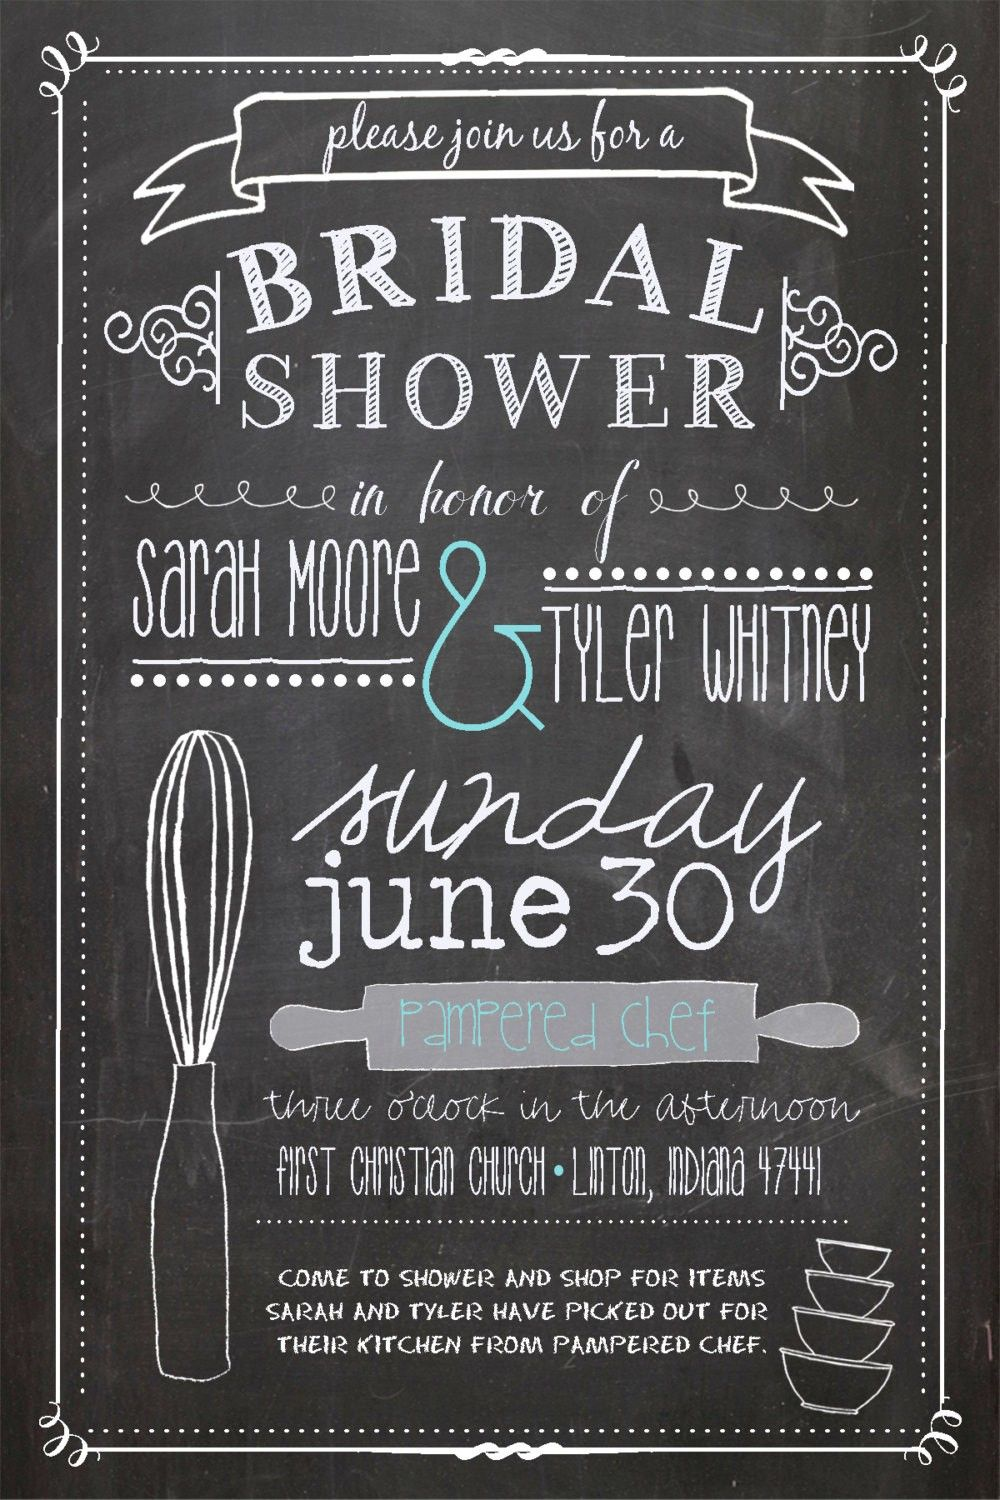 Pampered chef sample invitations bridal shower pinterest do this for the kitchen party kitchen themed bridal shower invitation chalkboard style pampered chef no filmwisefo Image collections